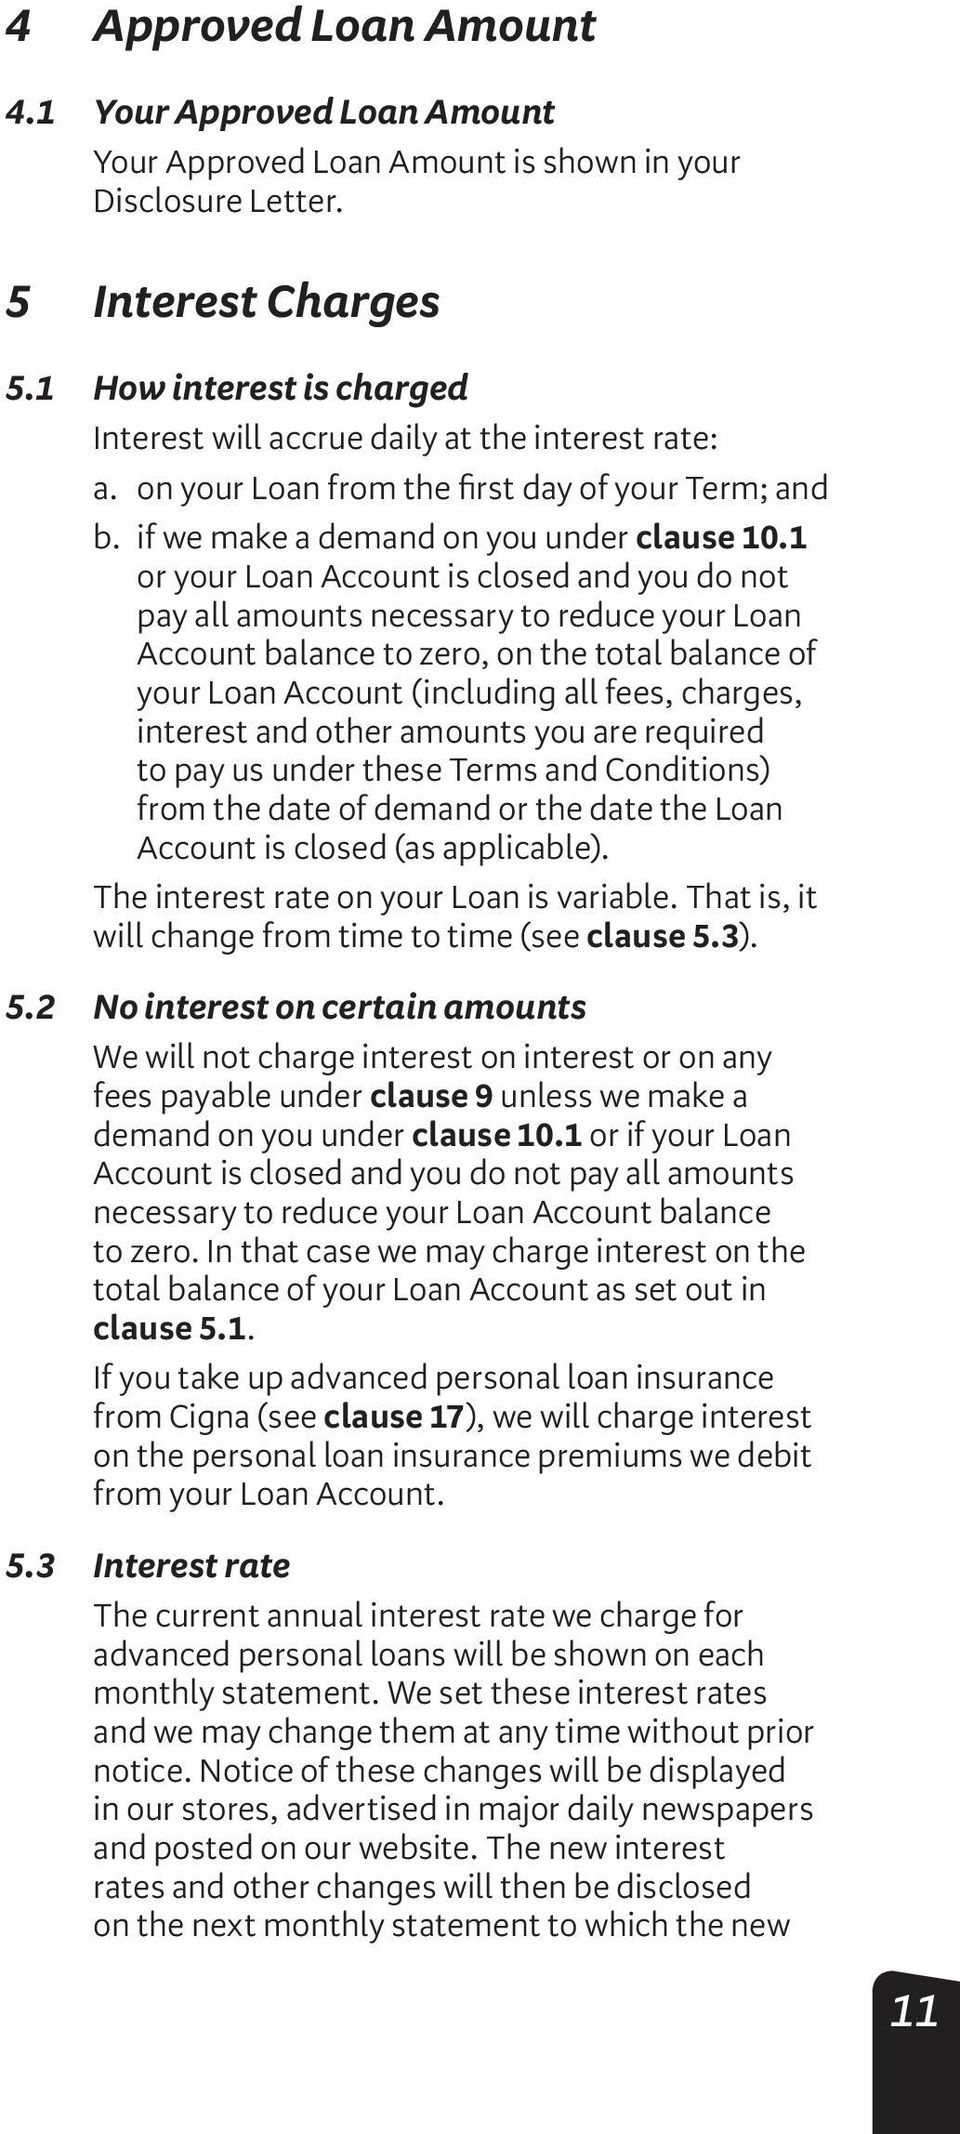 1 or your Loan Account is closed and you do not pay all amounts necessary to reduce your Loan Account balance to zero, on the total balance of your Loan Account (including all fees, charges, interest